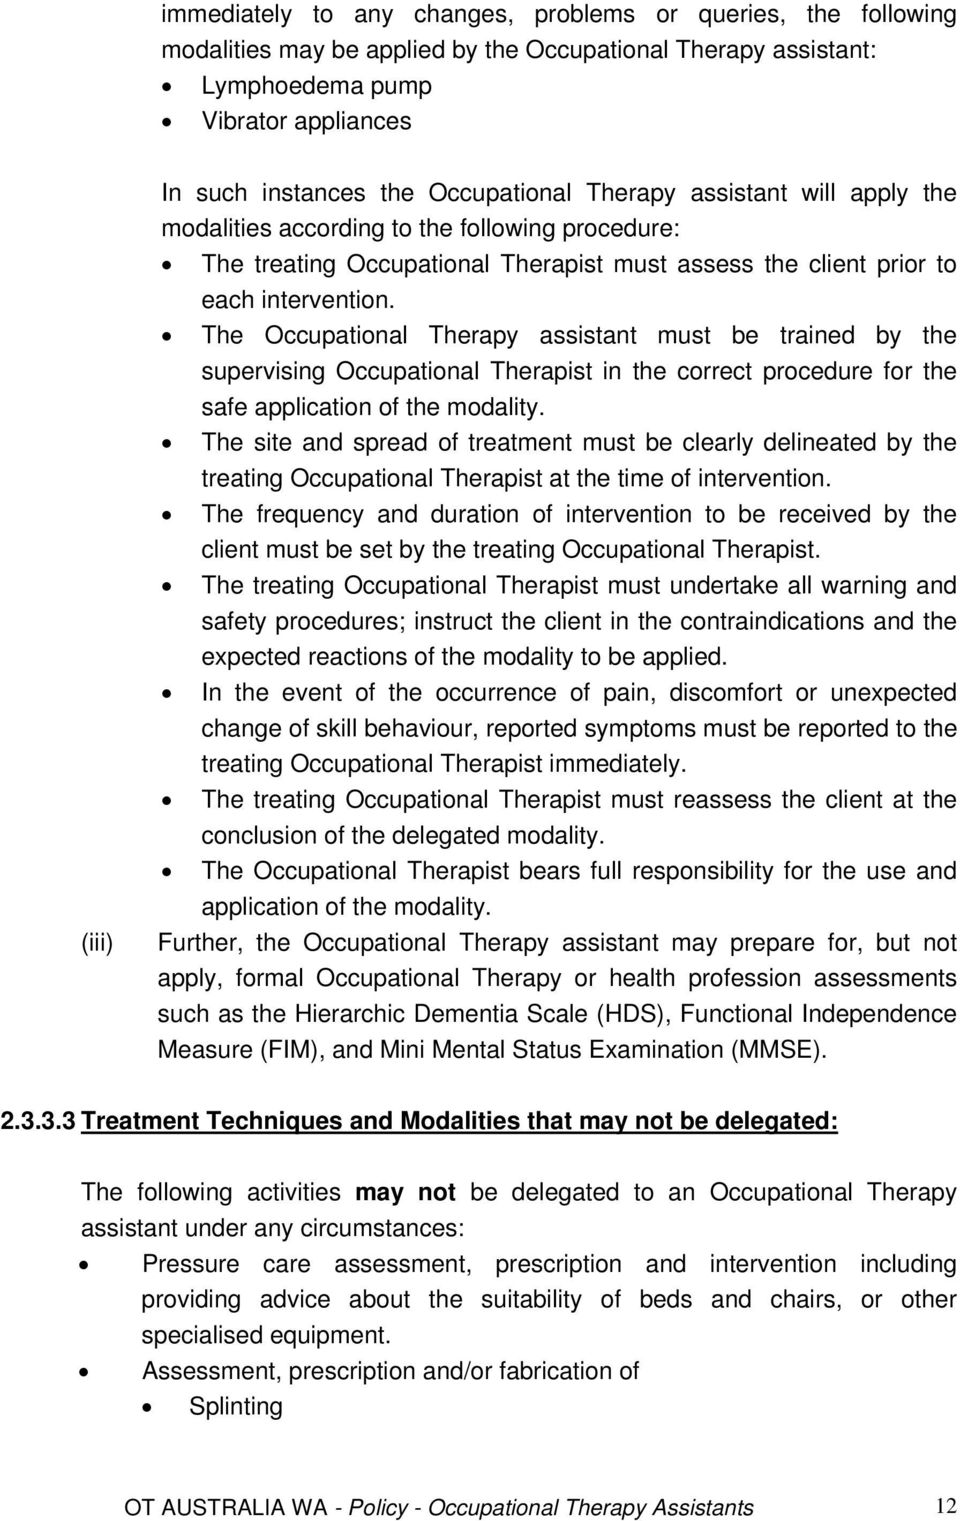 The Occupational Therapy assistant must be trained by the supervising Occupational Therapist in the correct procedure for the safe application of the modality.